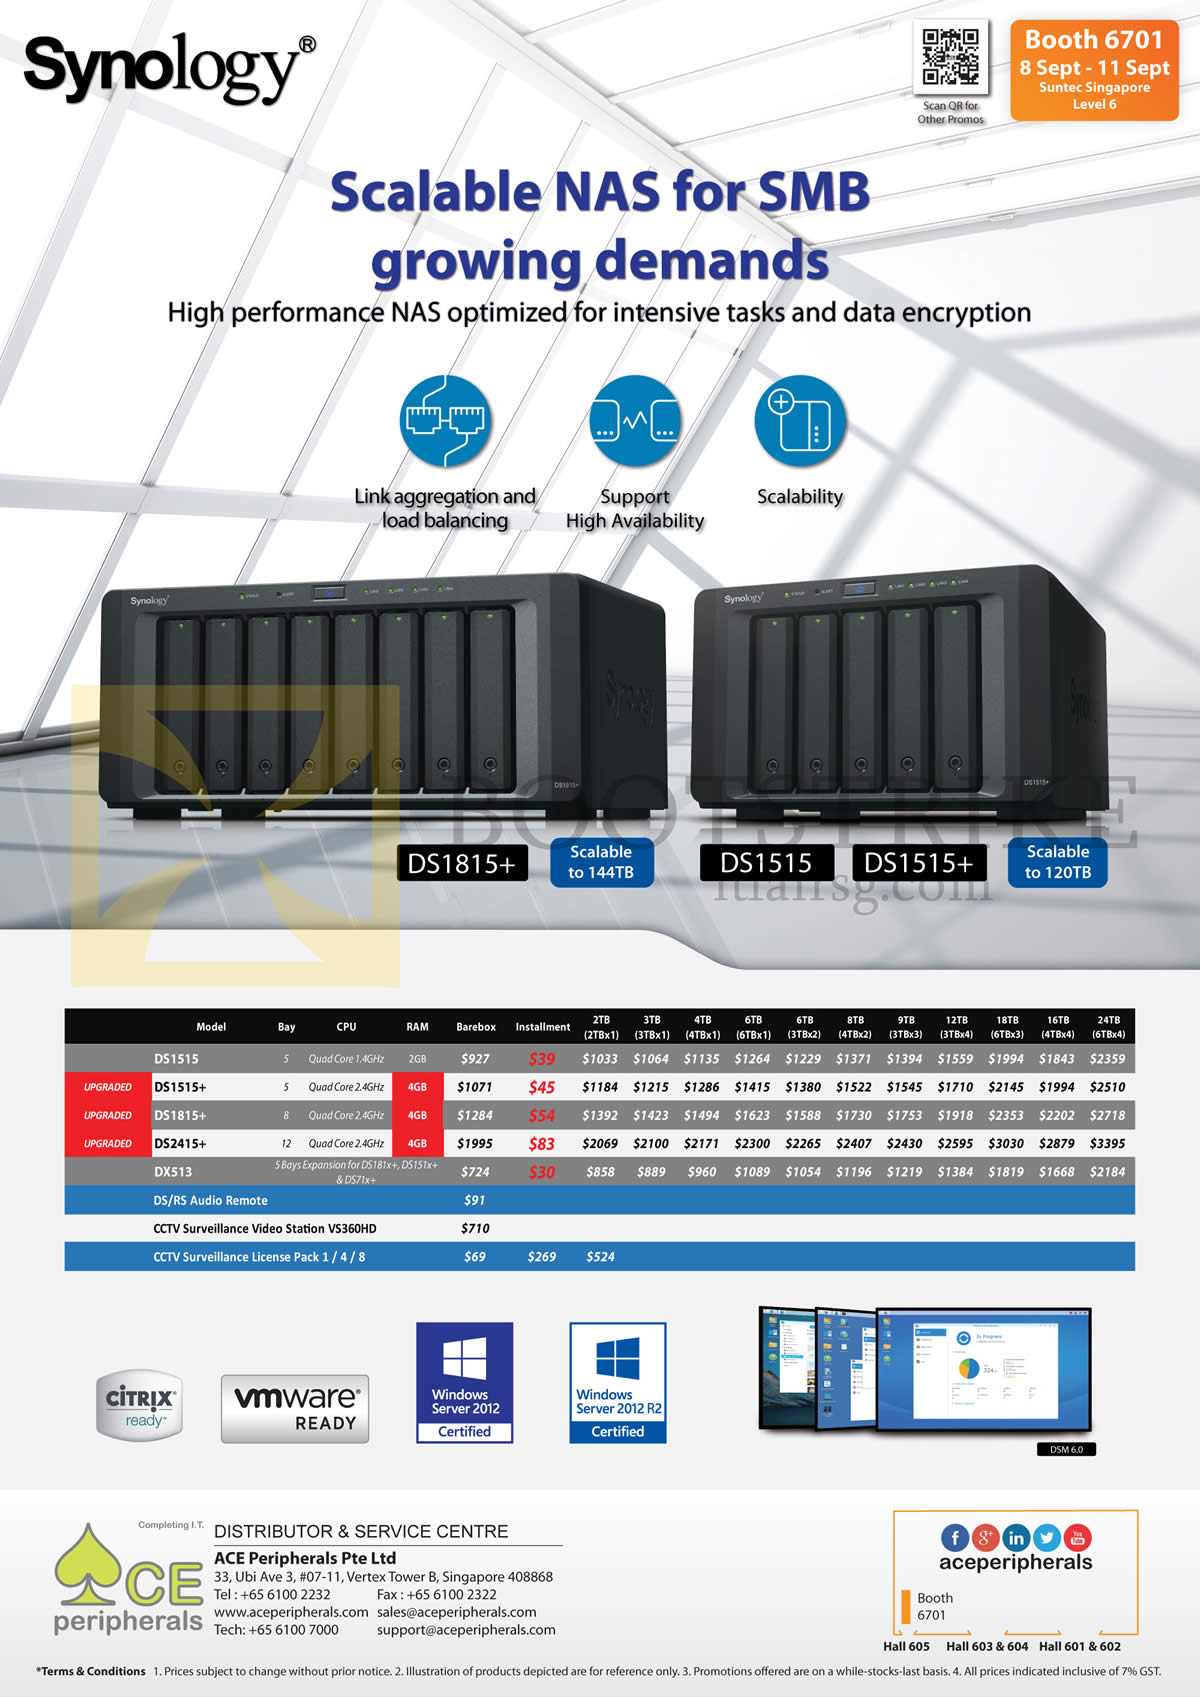 COMEX 2016 price list image brochure of Ace Peripherals Synology NAS DS1515, DS1515Plus, DS1815Plus, DS2415PPlus, DX513